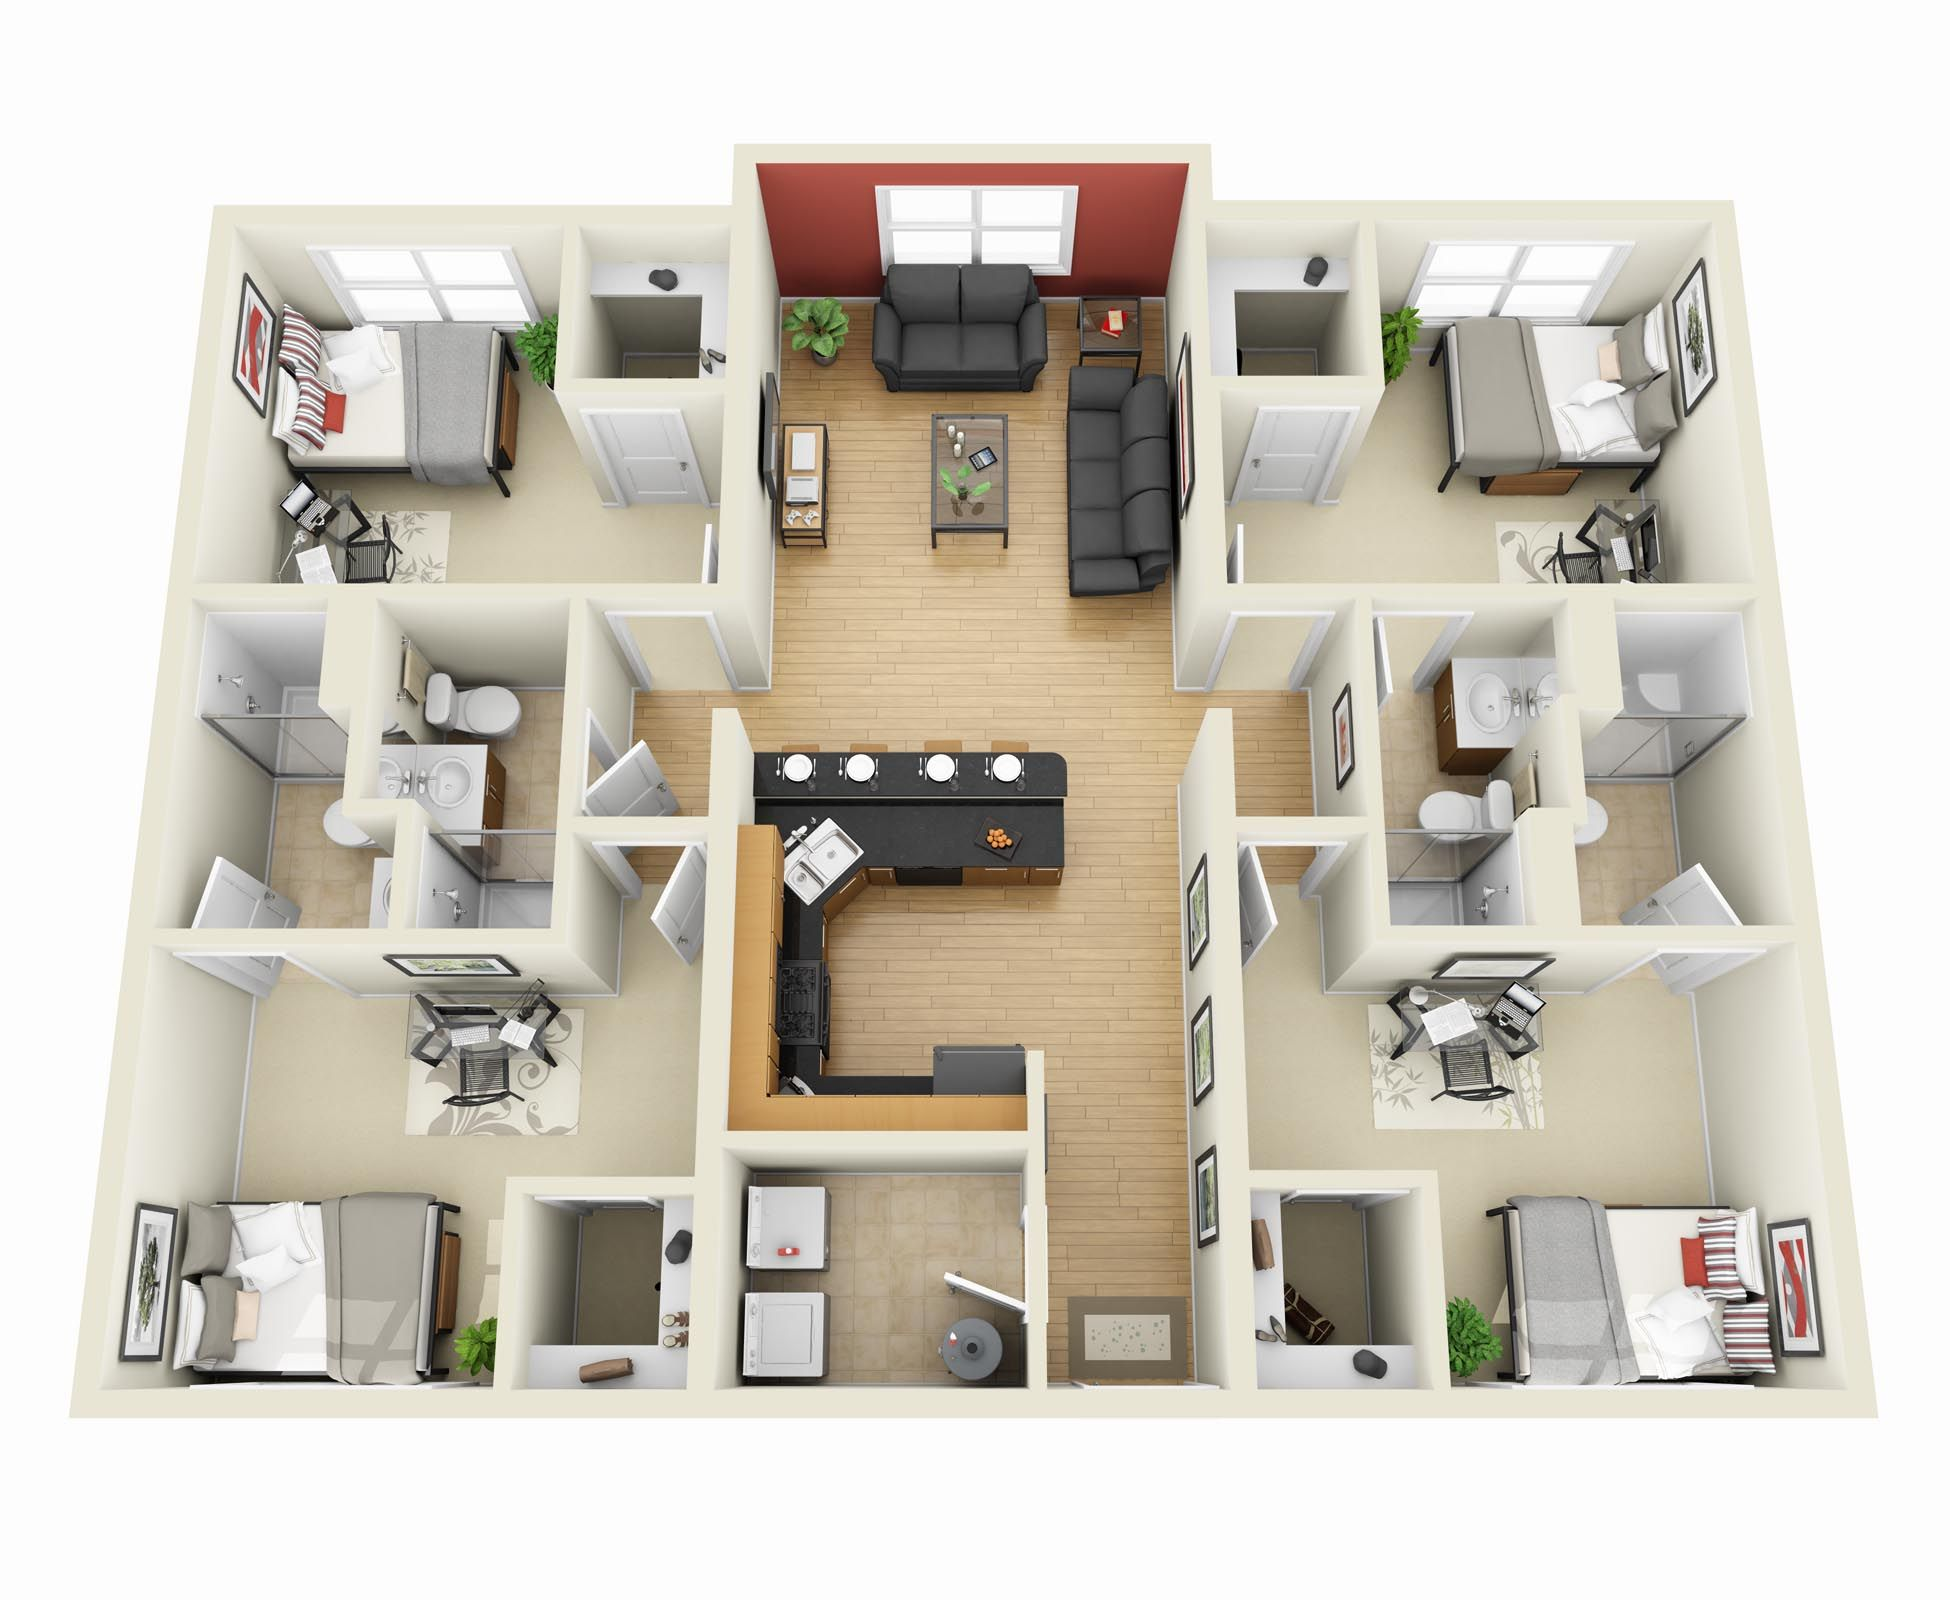 After Having Covered 50 Floor Plans Each Of Studios, 1 Bedroom, 2 Bedroom  And